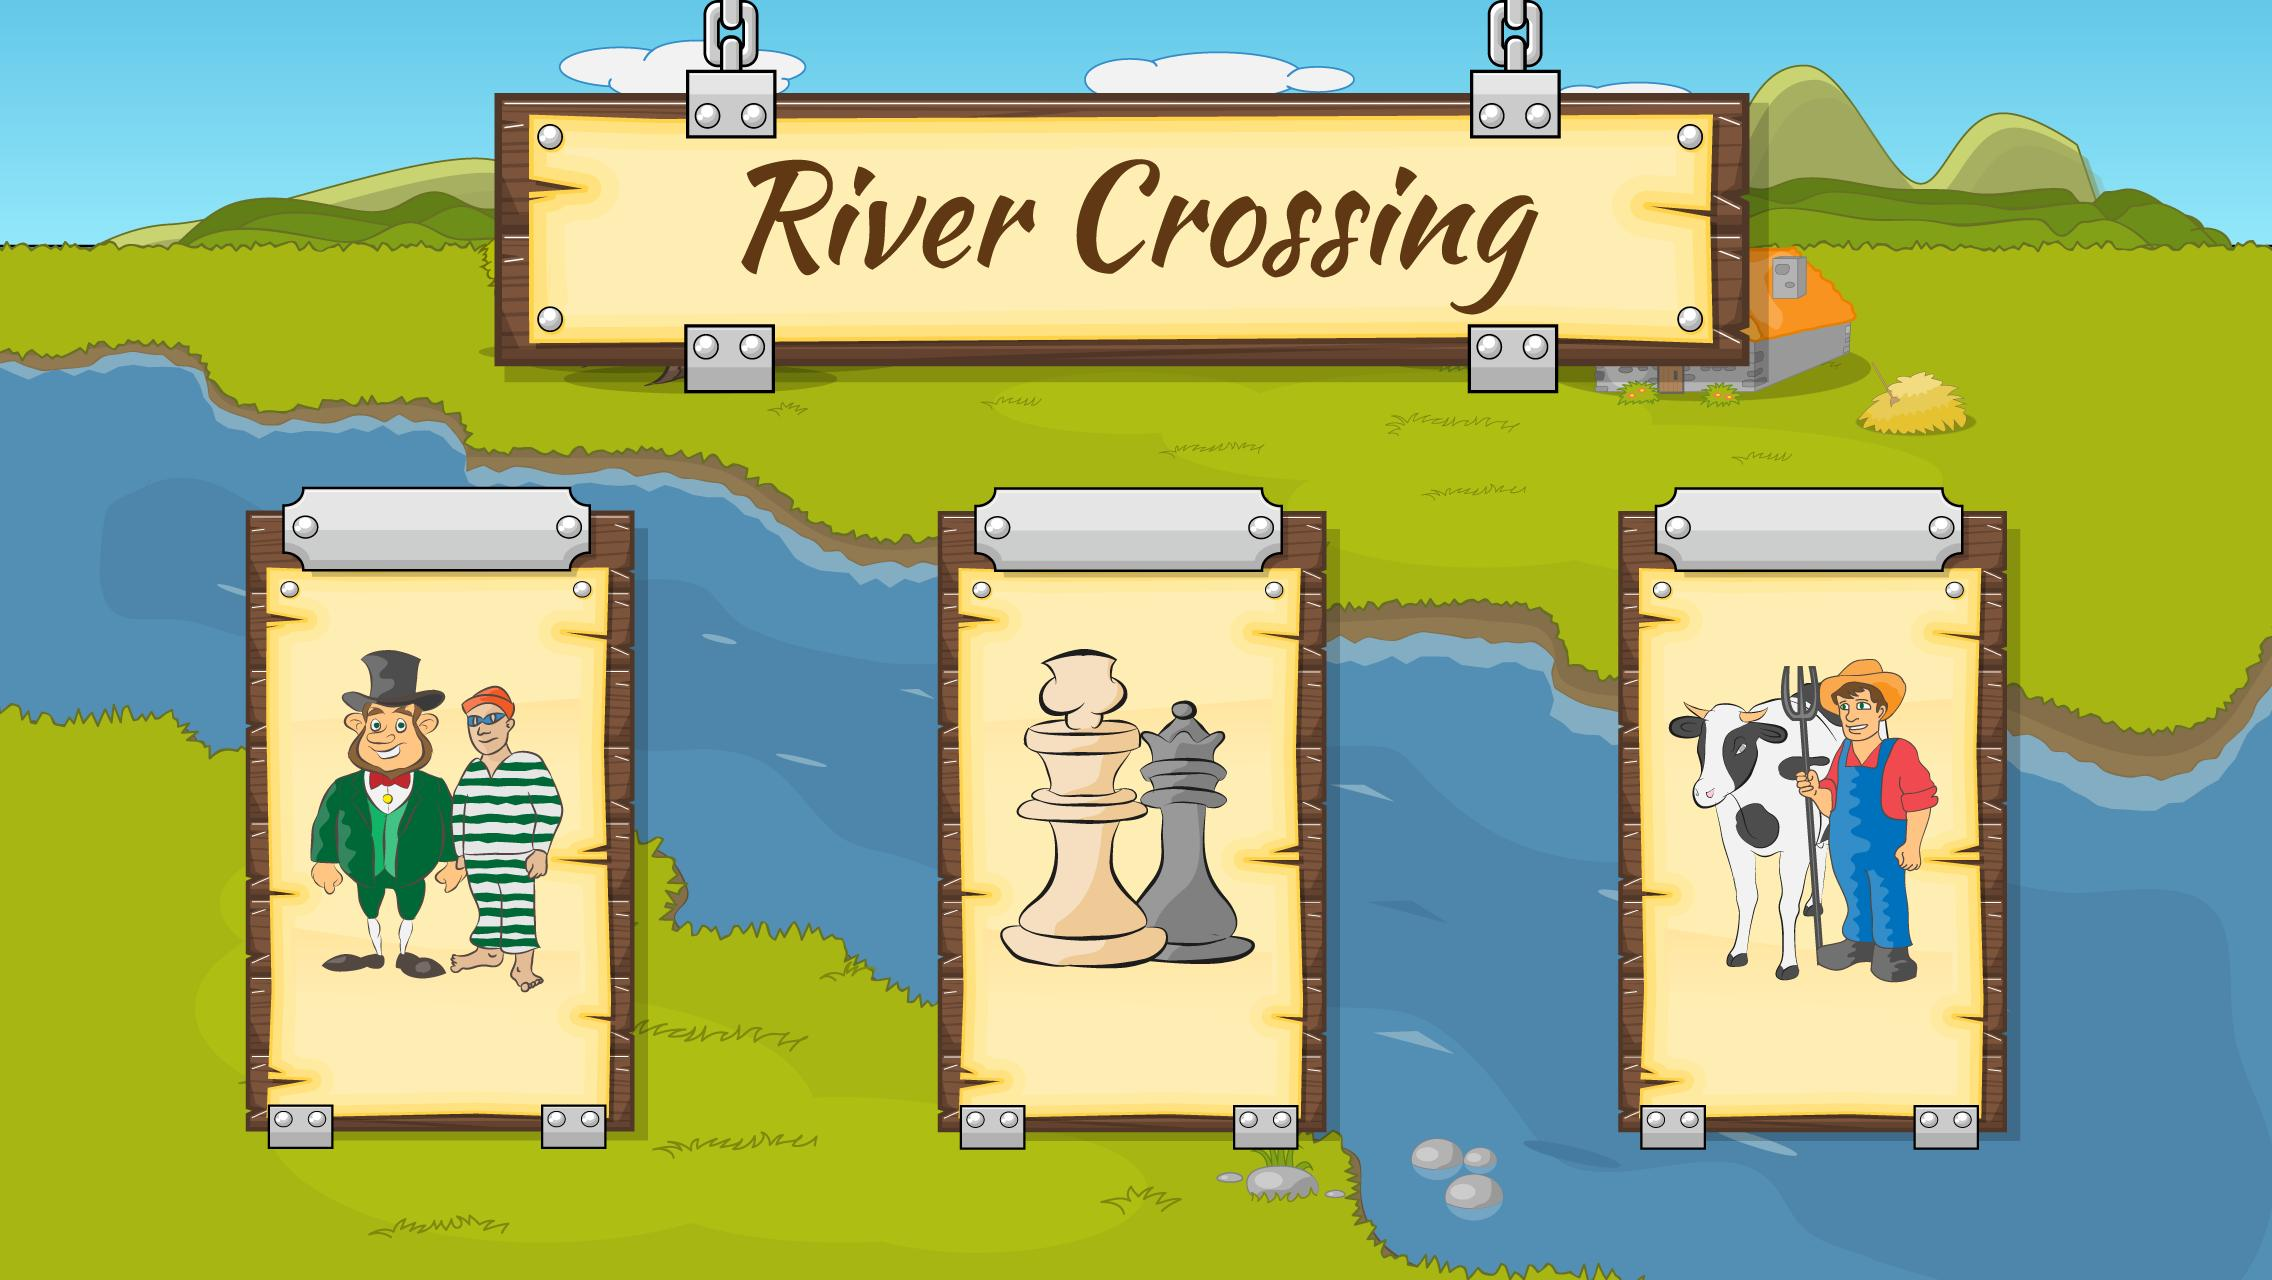 River Crossing IQ Logic Puzzles & Fun Brain Games 1.2.2 Screenshot 9